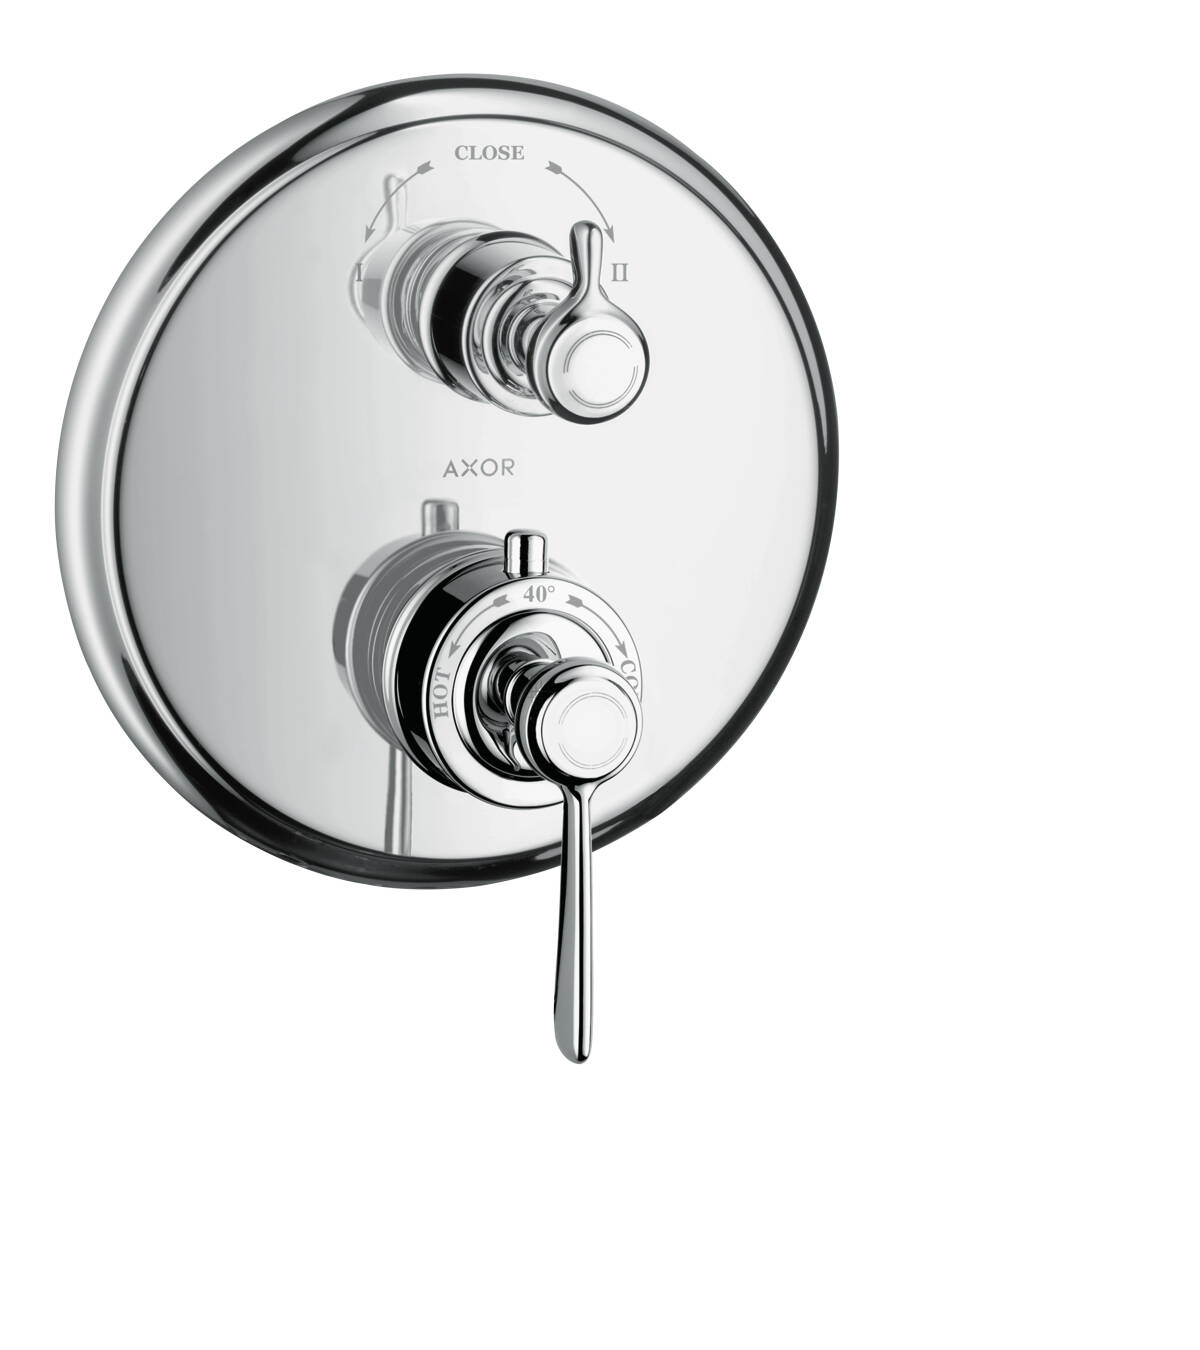 Thermostat for concealed installation with lever landle and shut-off/ diverter valve, Chrome, 16821000